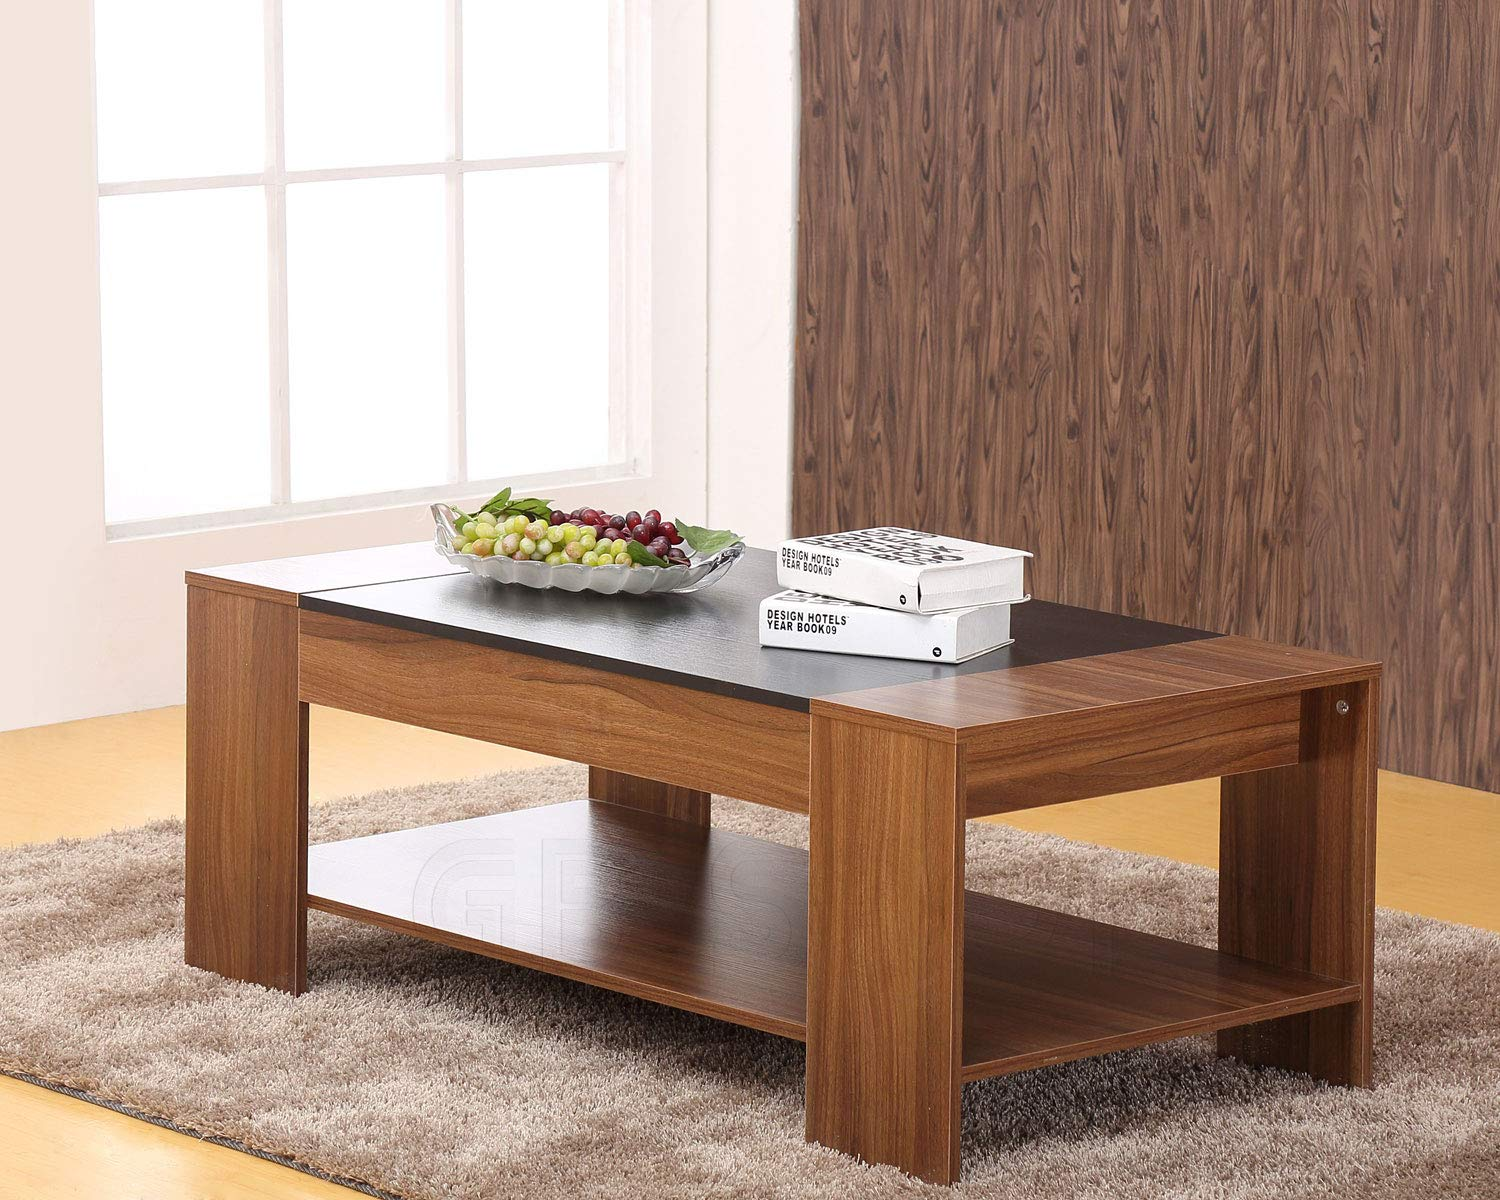 Modern coffee table walnut occasional living room furniture amazon co uk kitchen home